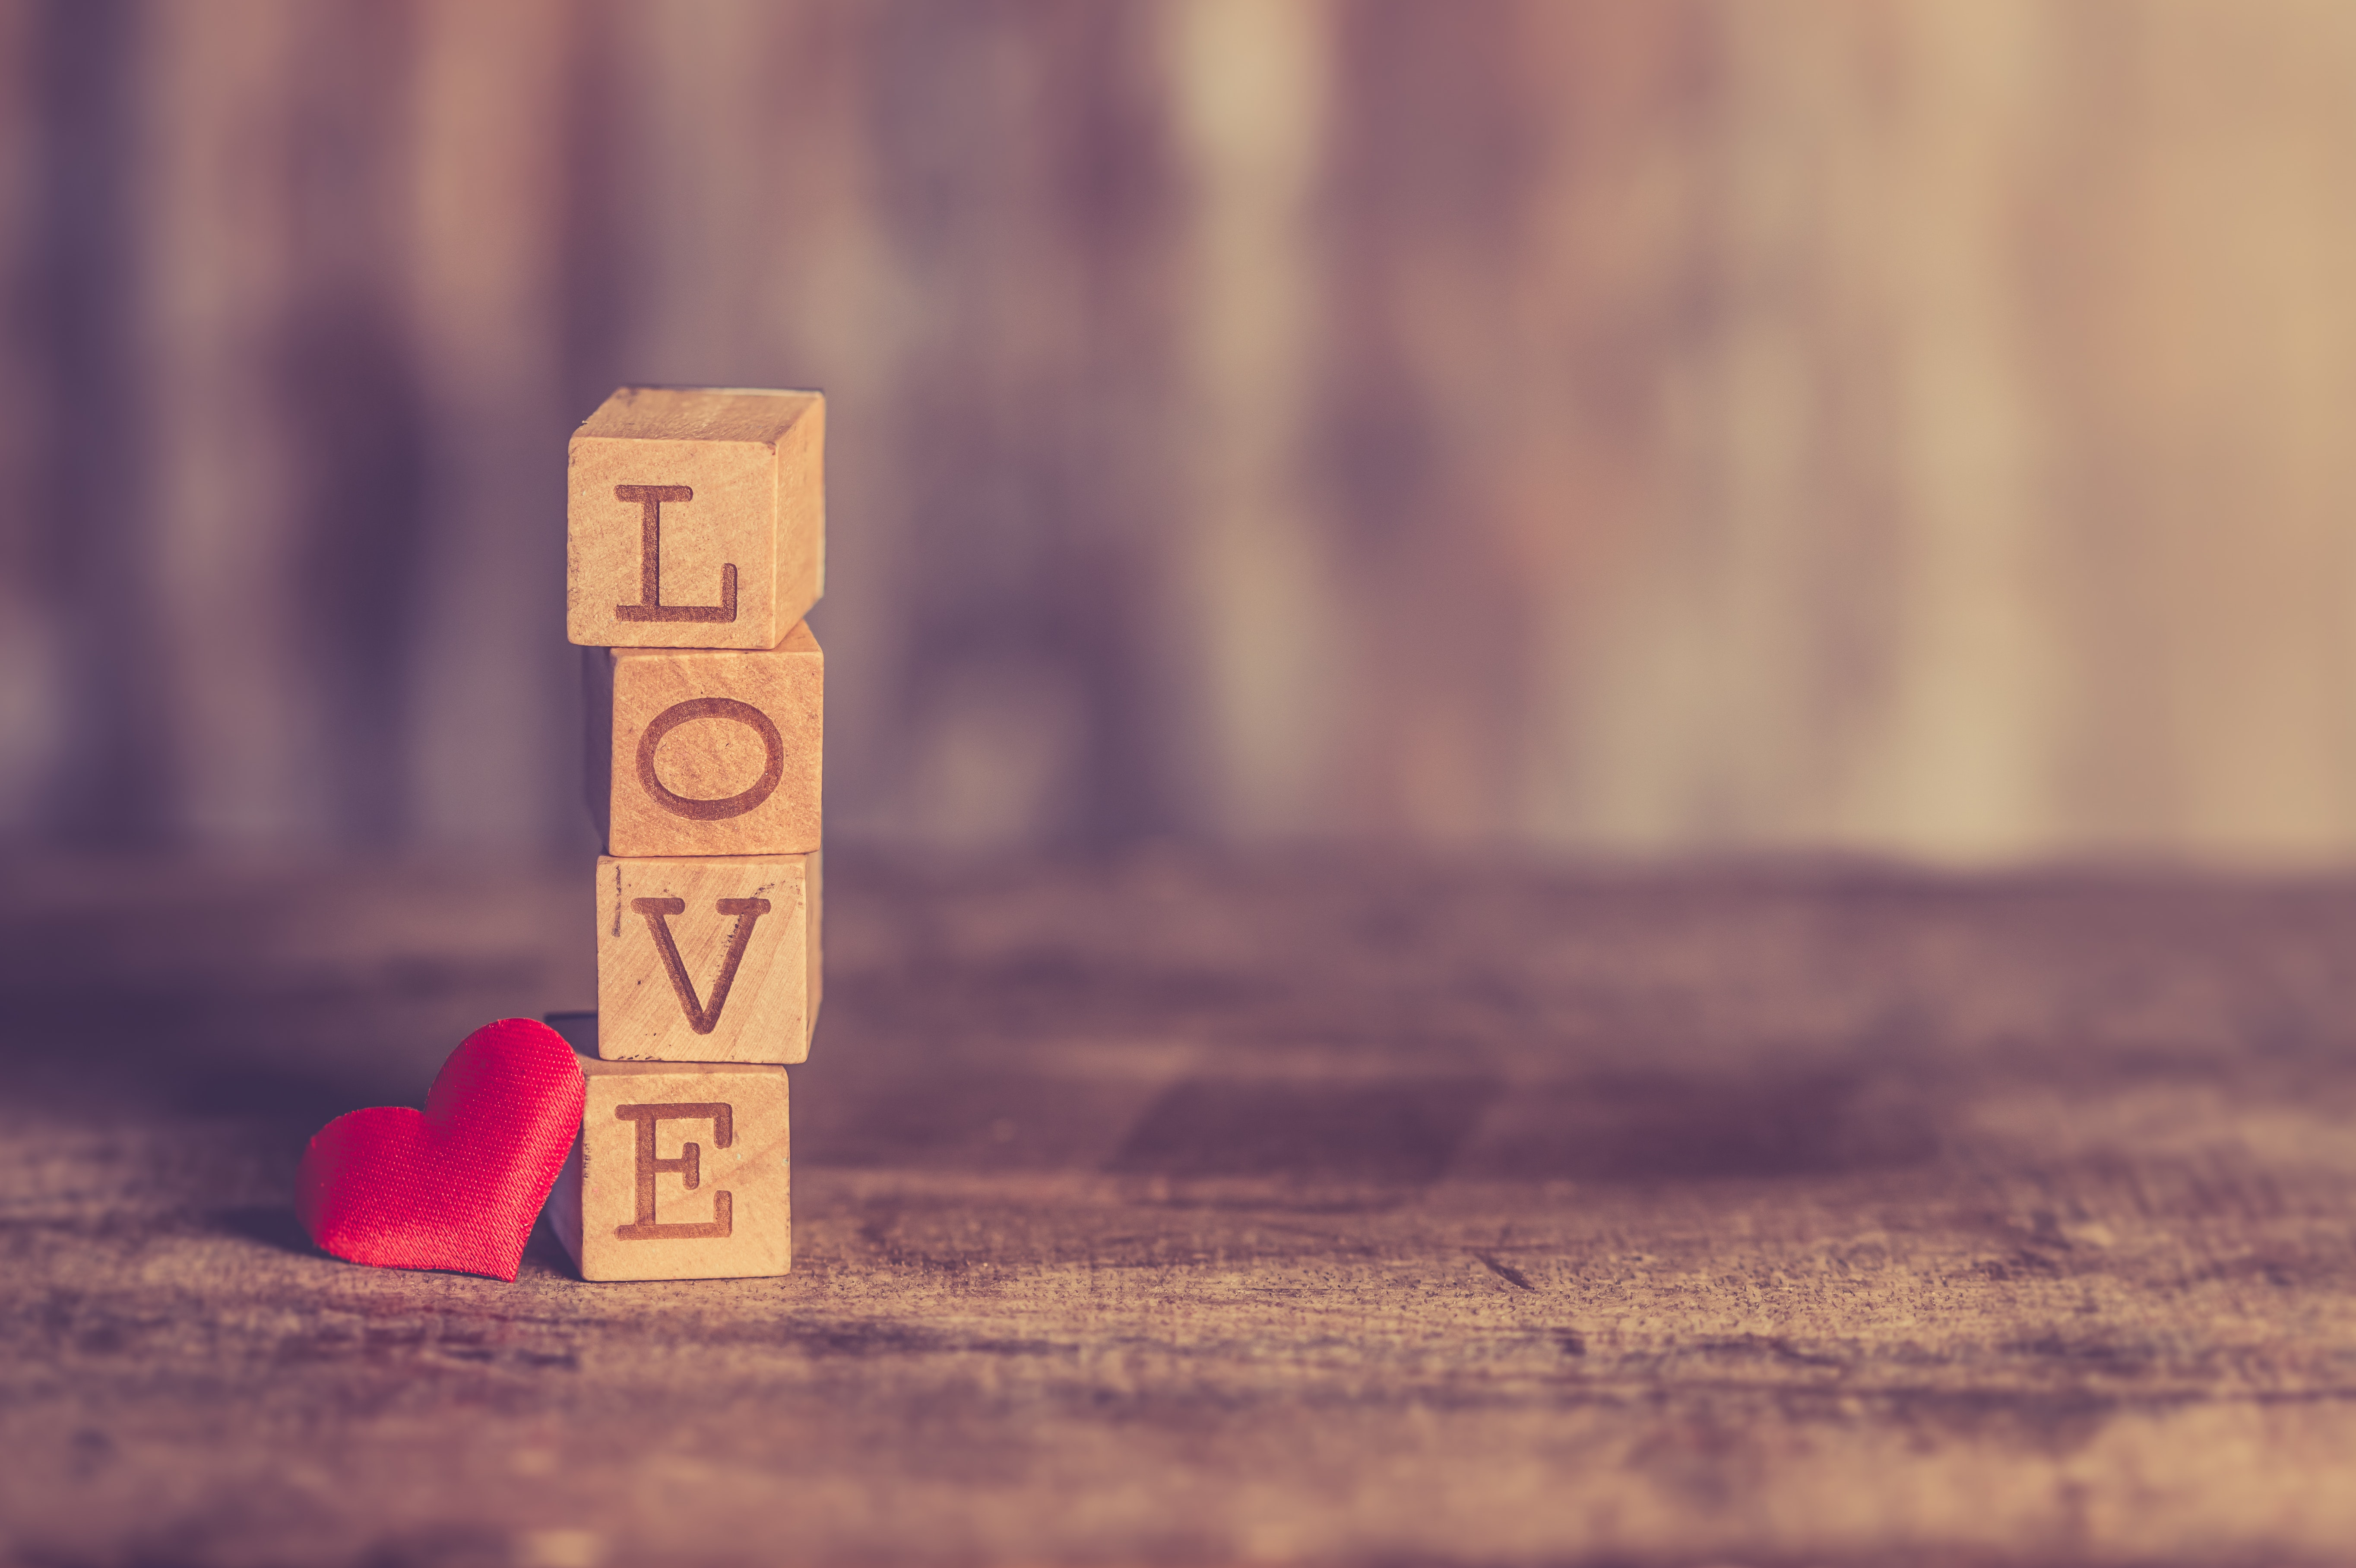 Stack of Love Wooden Blocks, Art, Wood, Vintage, Texture, HQ Photo